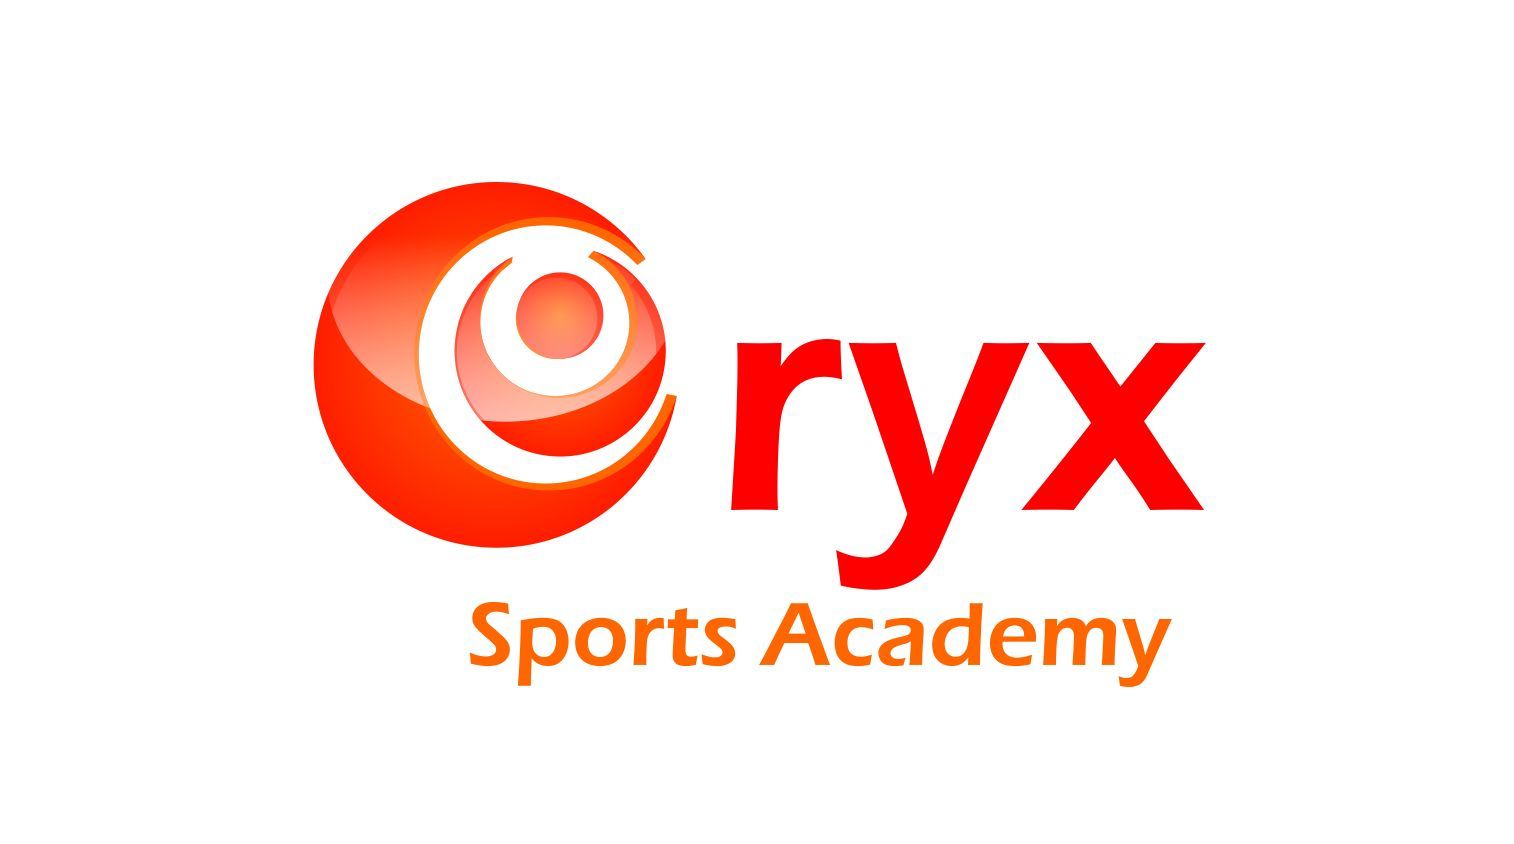 Logo Design by Choirul Jcd - Entry No. 55 in the Logo Design Contest New Logo Design for Oryx Sports Academy.